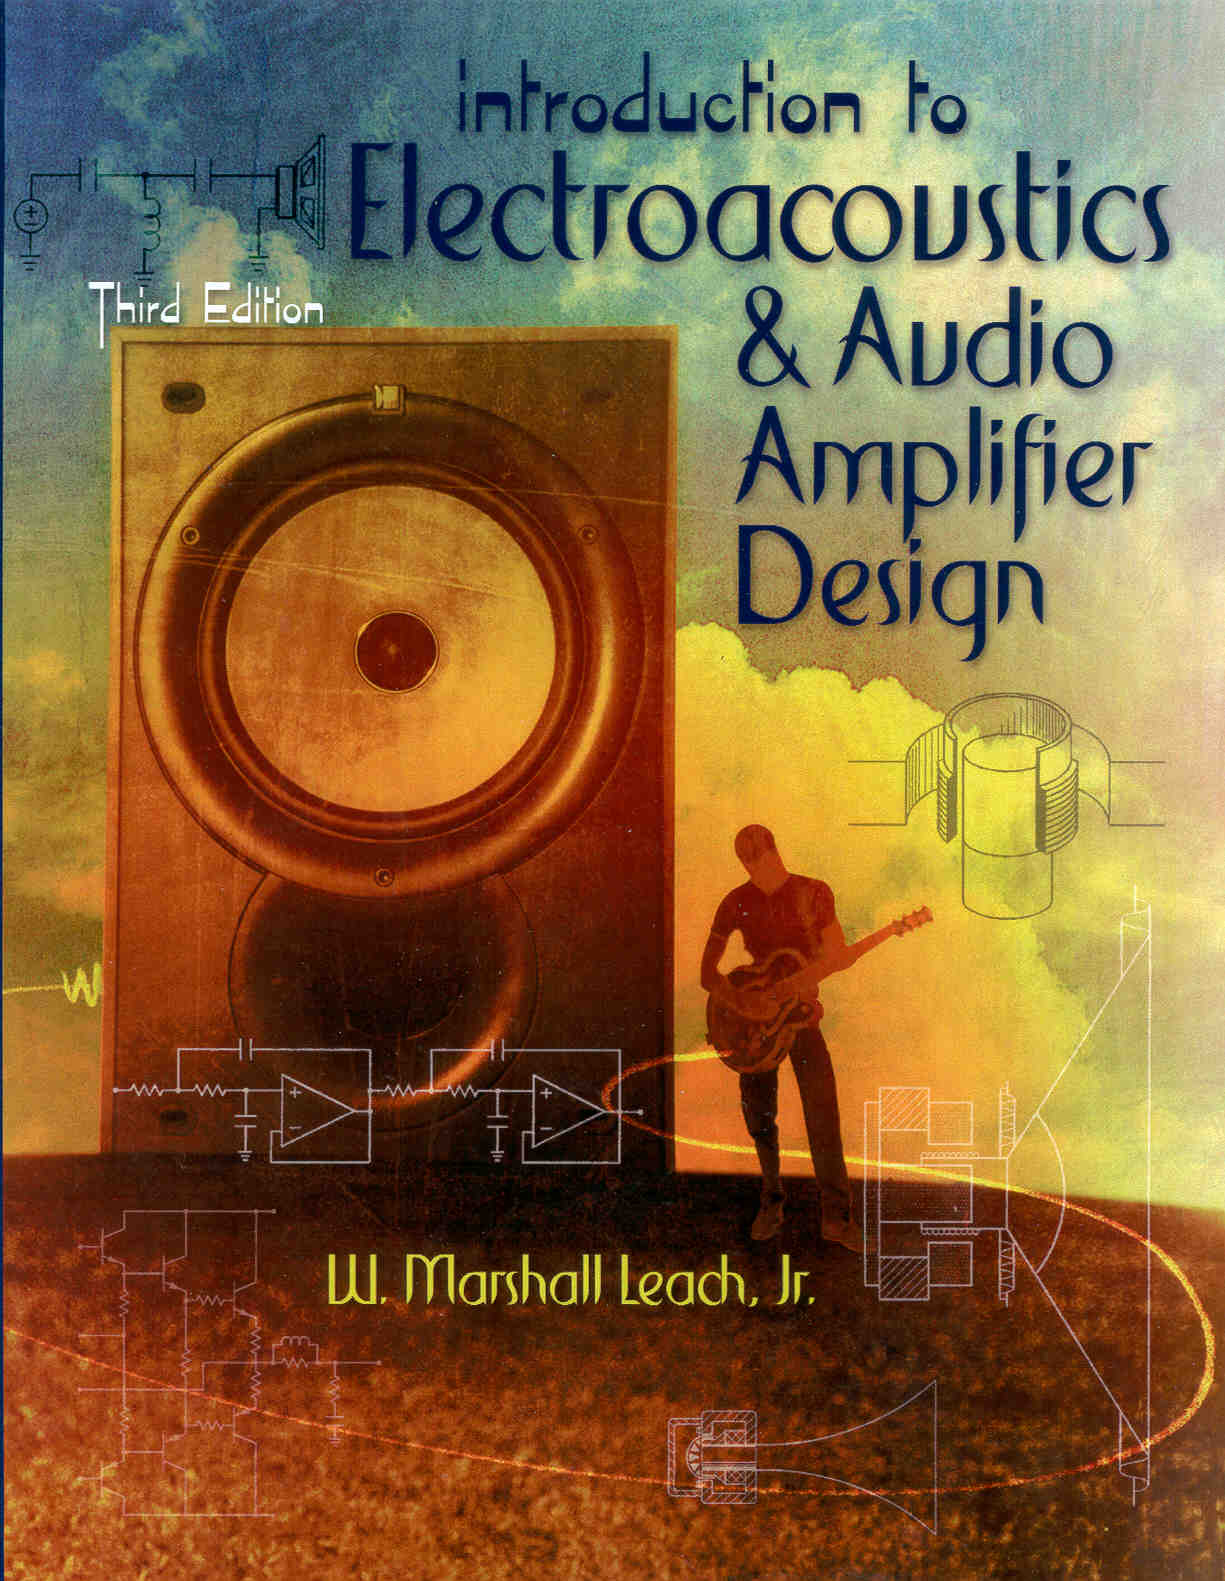 An Introduction to Electroacoustics and Audio Amplifier Design